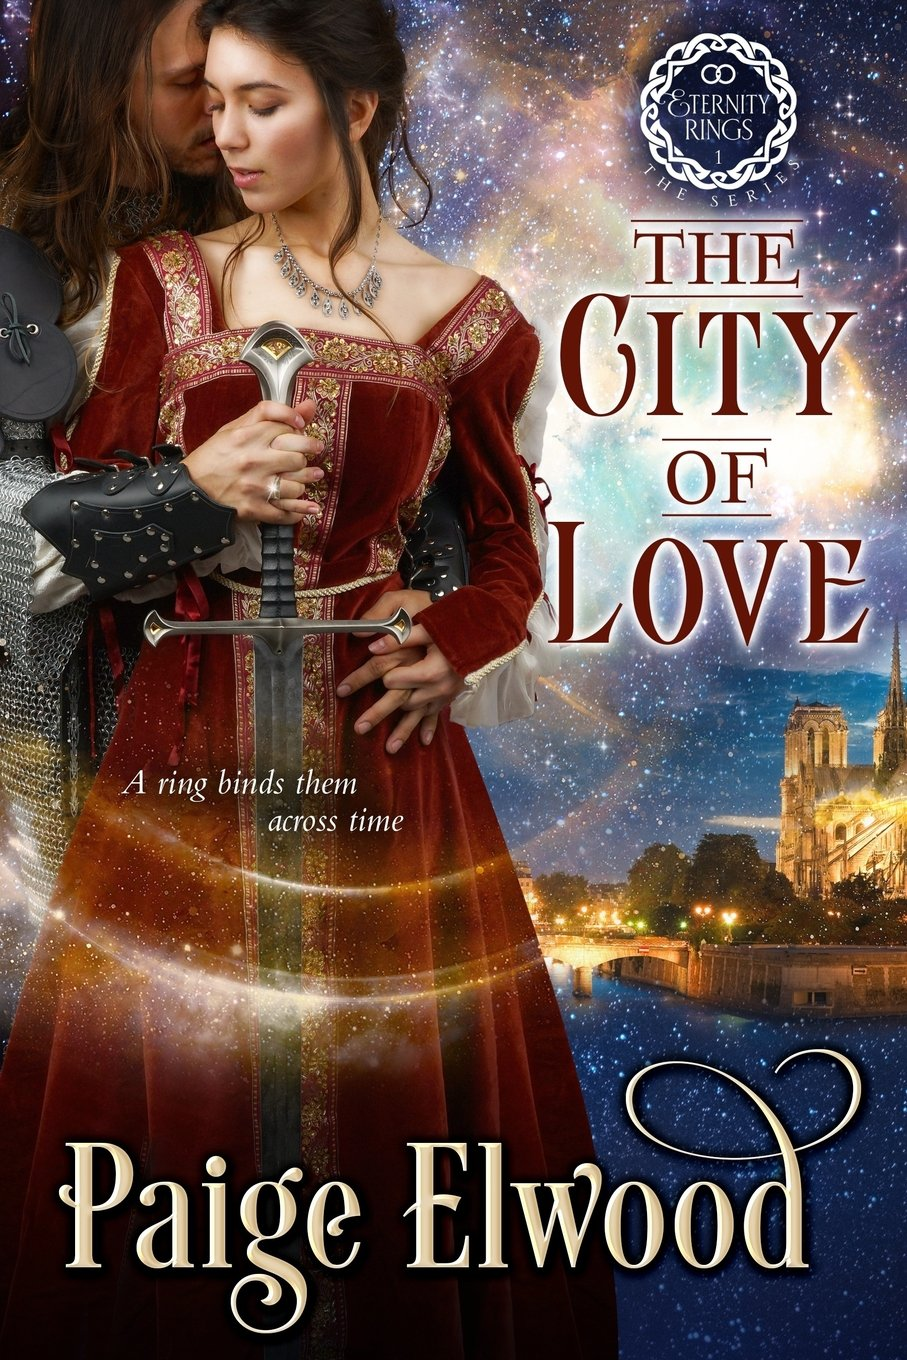 Read Online The City of Love: A Medieval Time Travel Romance (Eternity Rings) (Volume 1) pdf epub